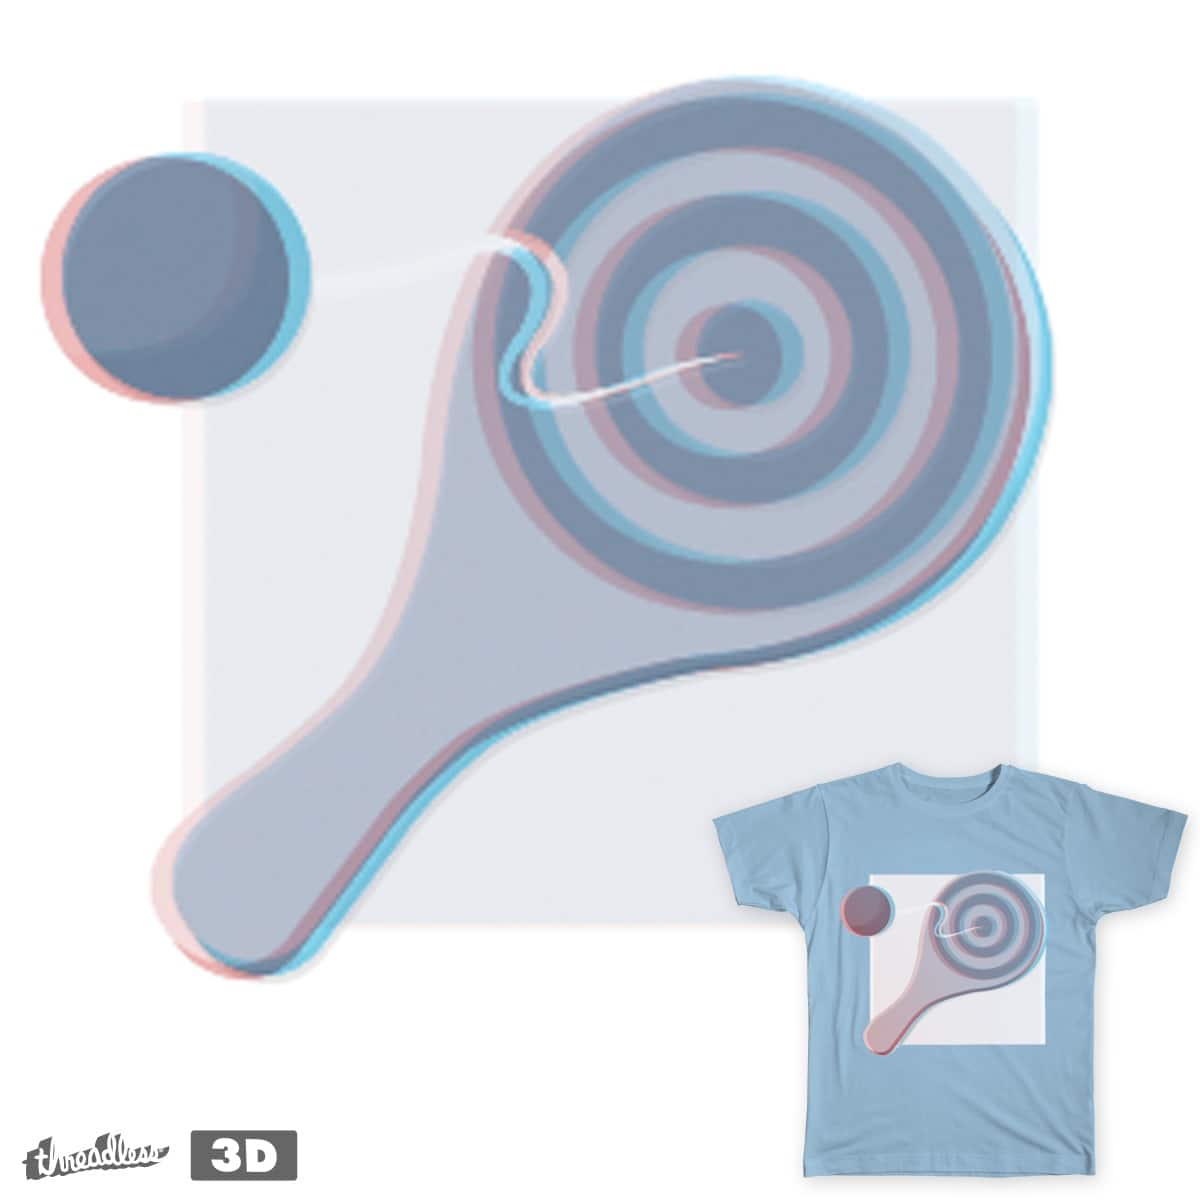 Paddle Ball 3D by mykbit on Threadless